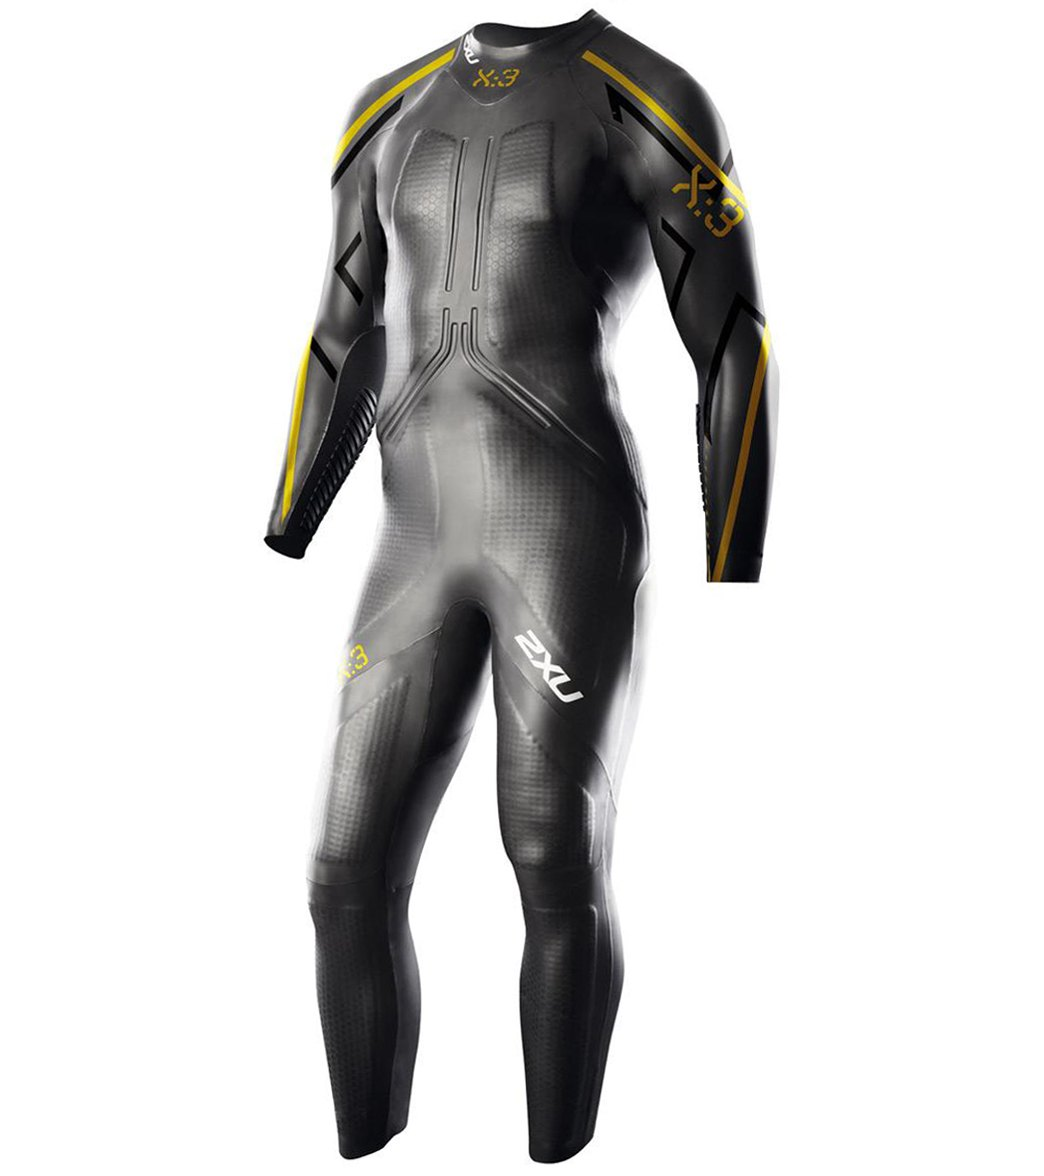 2XU Men s X 3 Project X Triathlon Wetsuit at SwimOutlet.com - Free Shipping f188f64ee3cf7